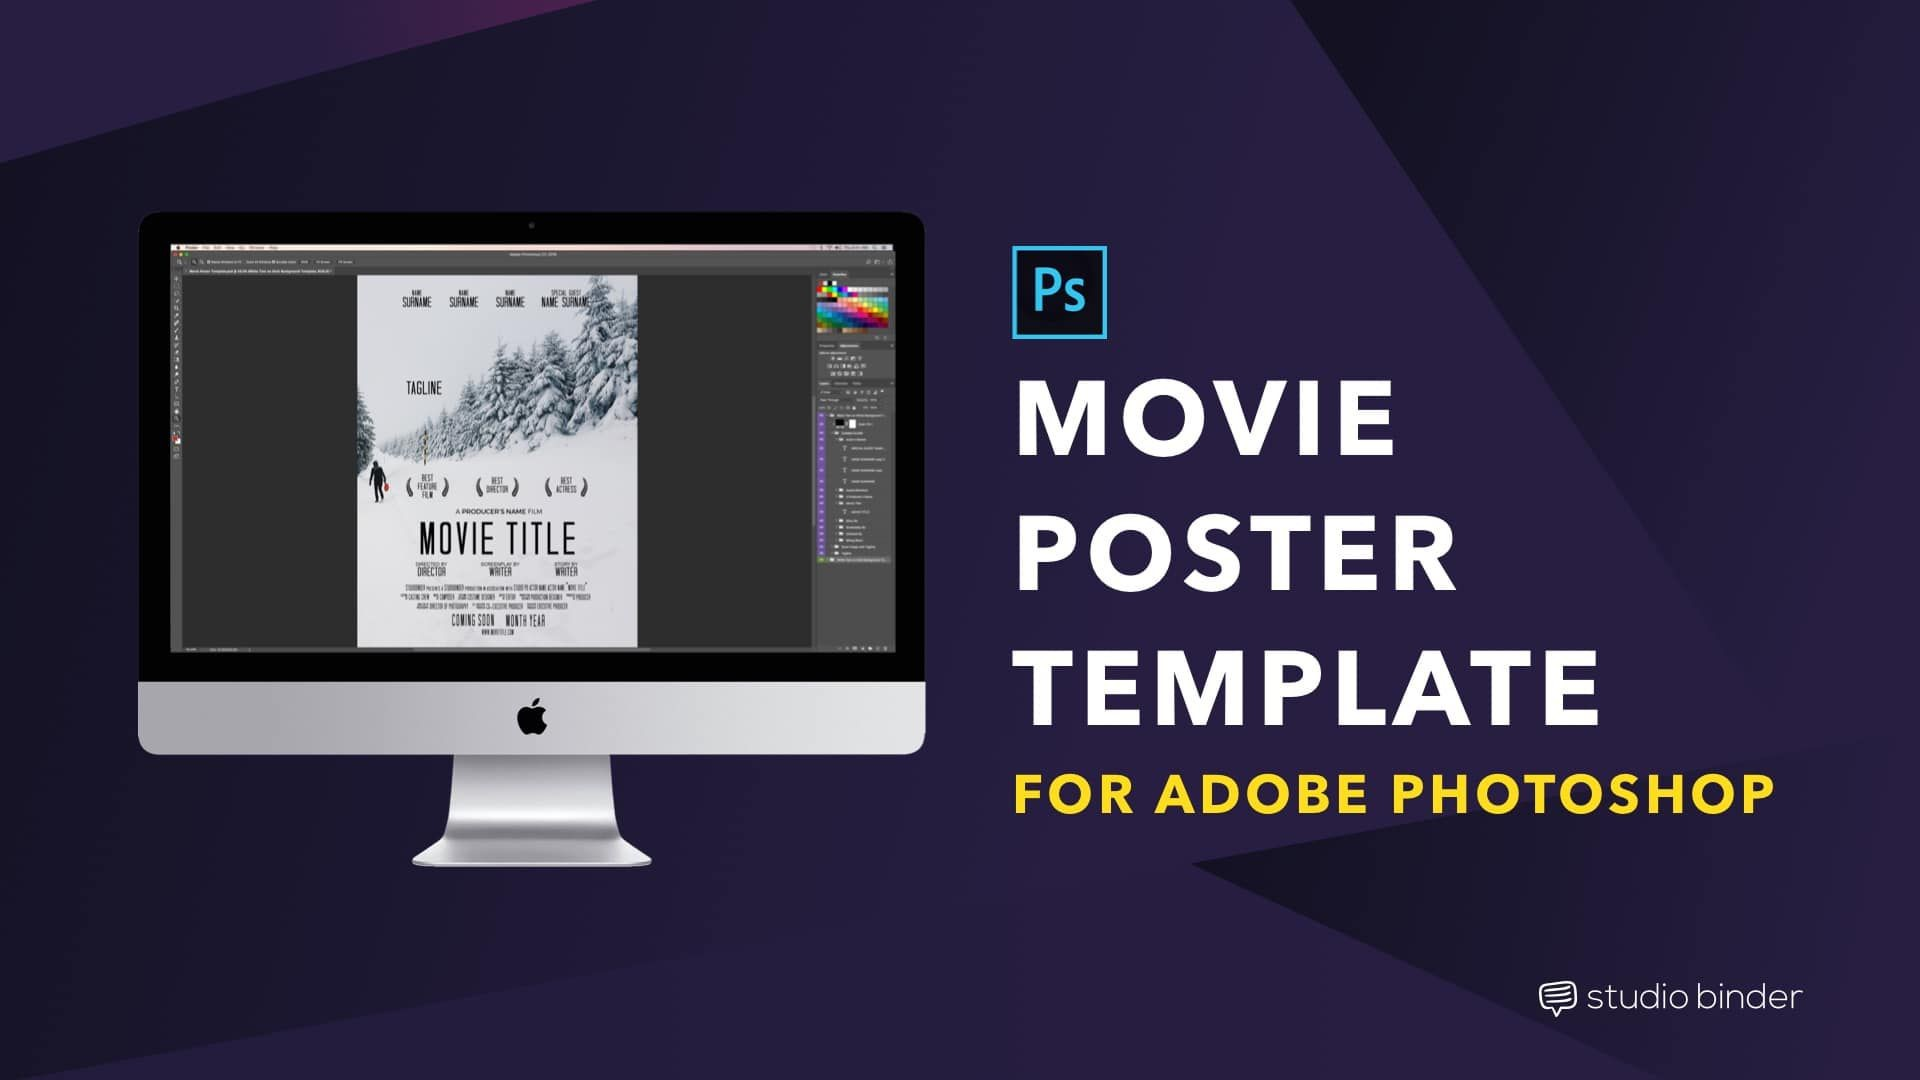 009 Magnificent Adobe Photoshop Psd Poster Template Free Download Sample 1920